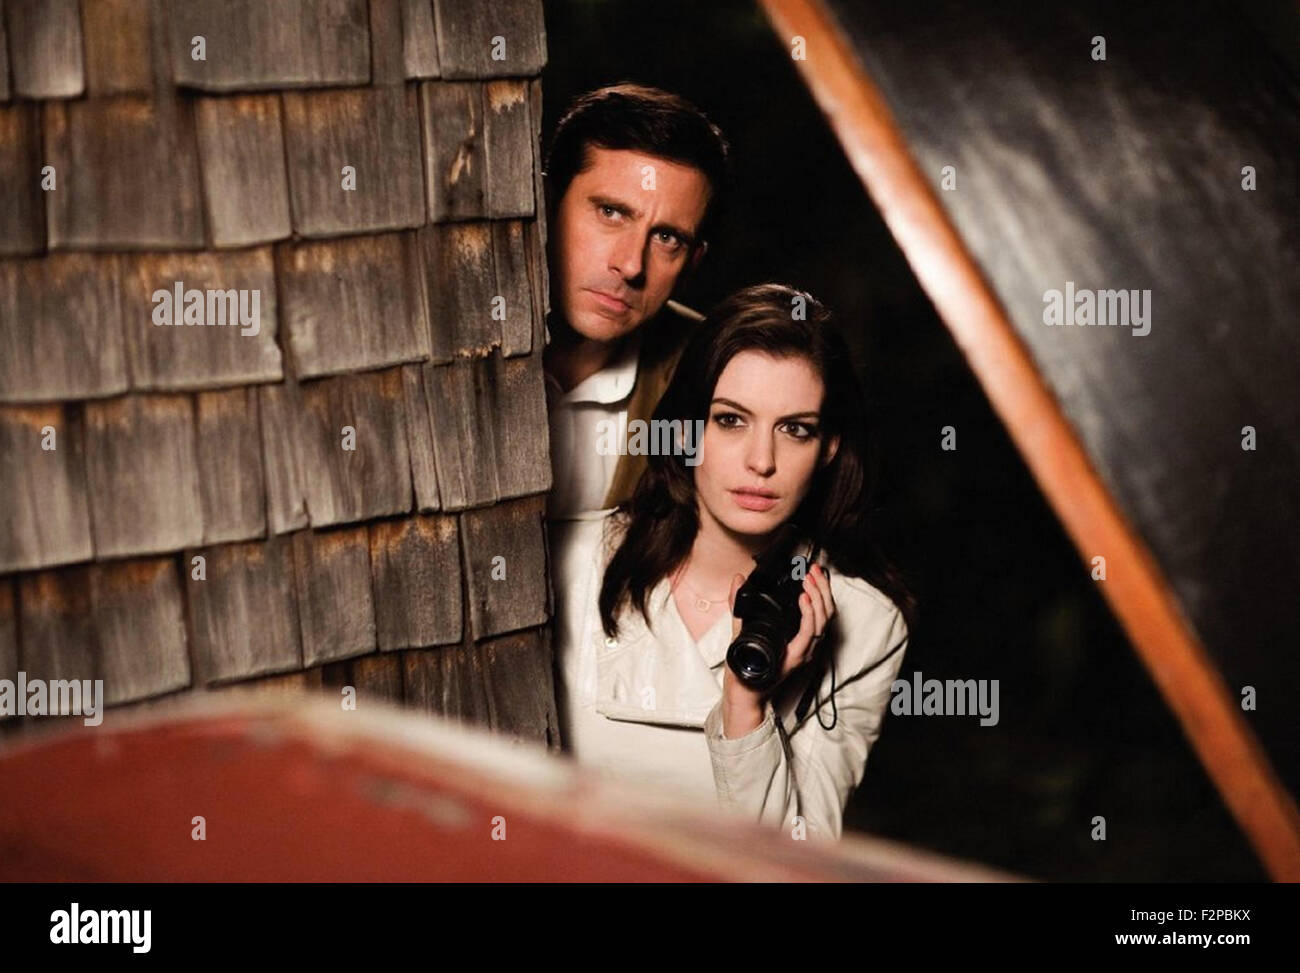 GET SMART 2008 Warner Home Entertainmnet film with Anne Hathaway and Steve Carell - Stock Image